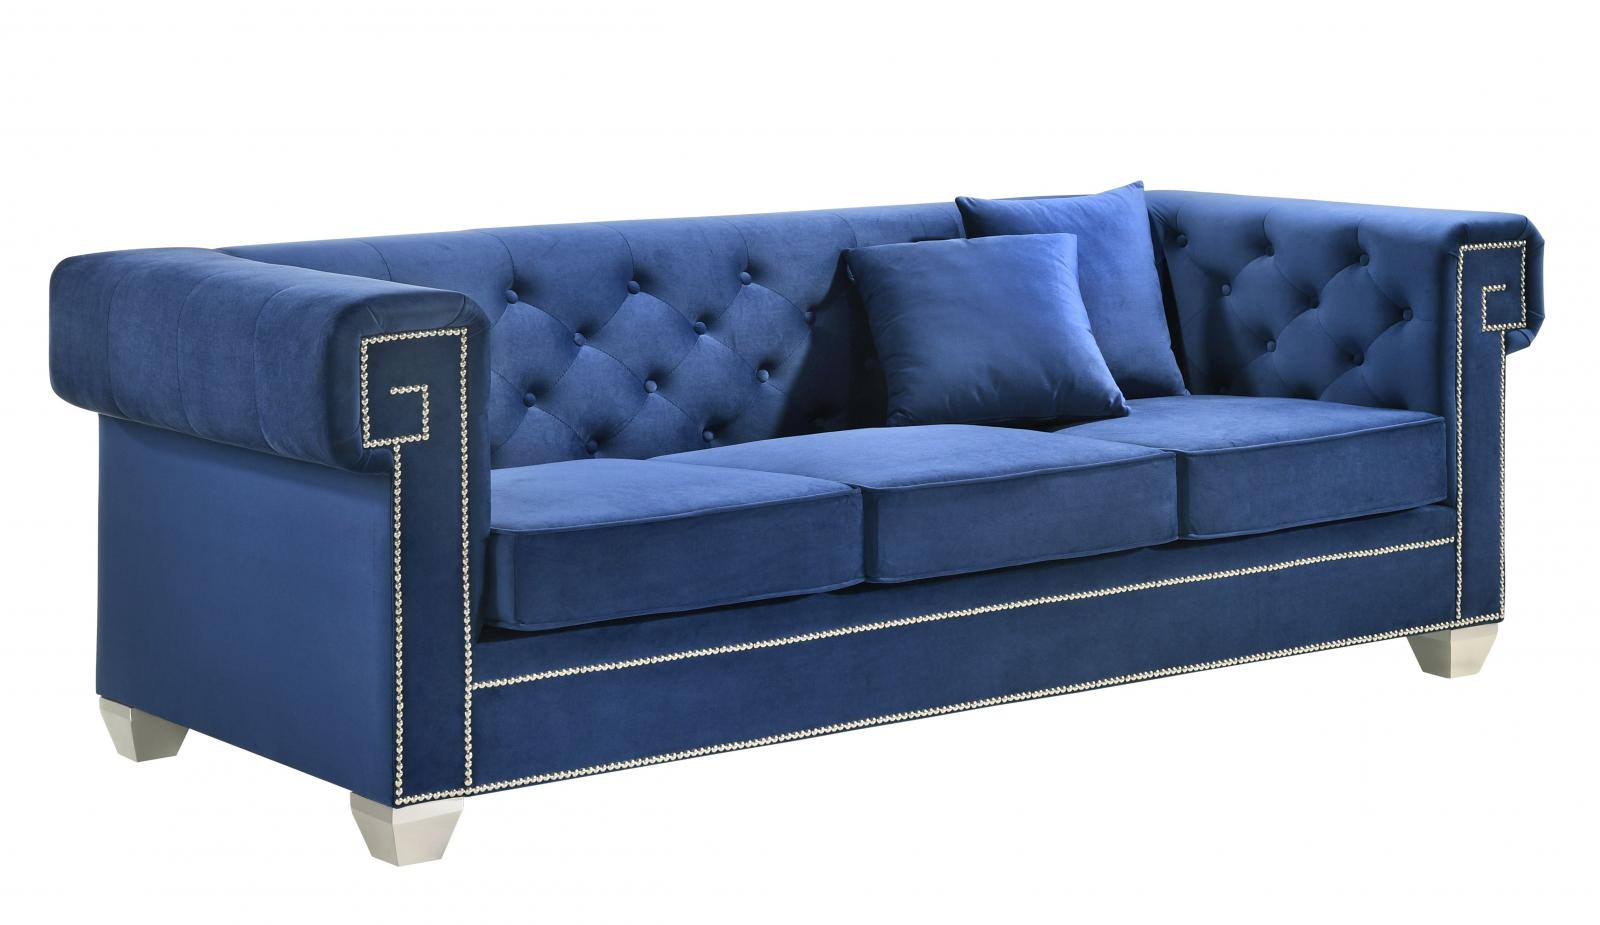 Modern Blue Velvet and Fabric, Stainless Steel Sofa 1 pcs Clover Blue by Cosmos Furniture